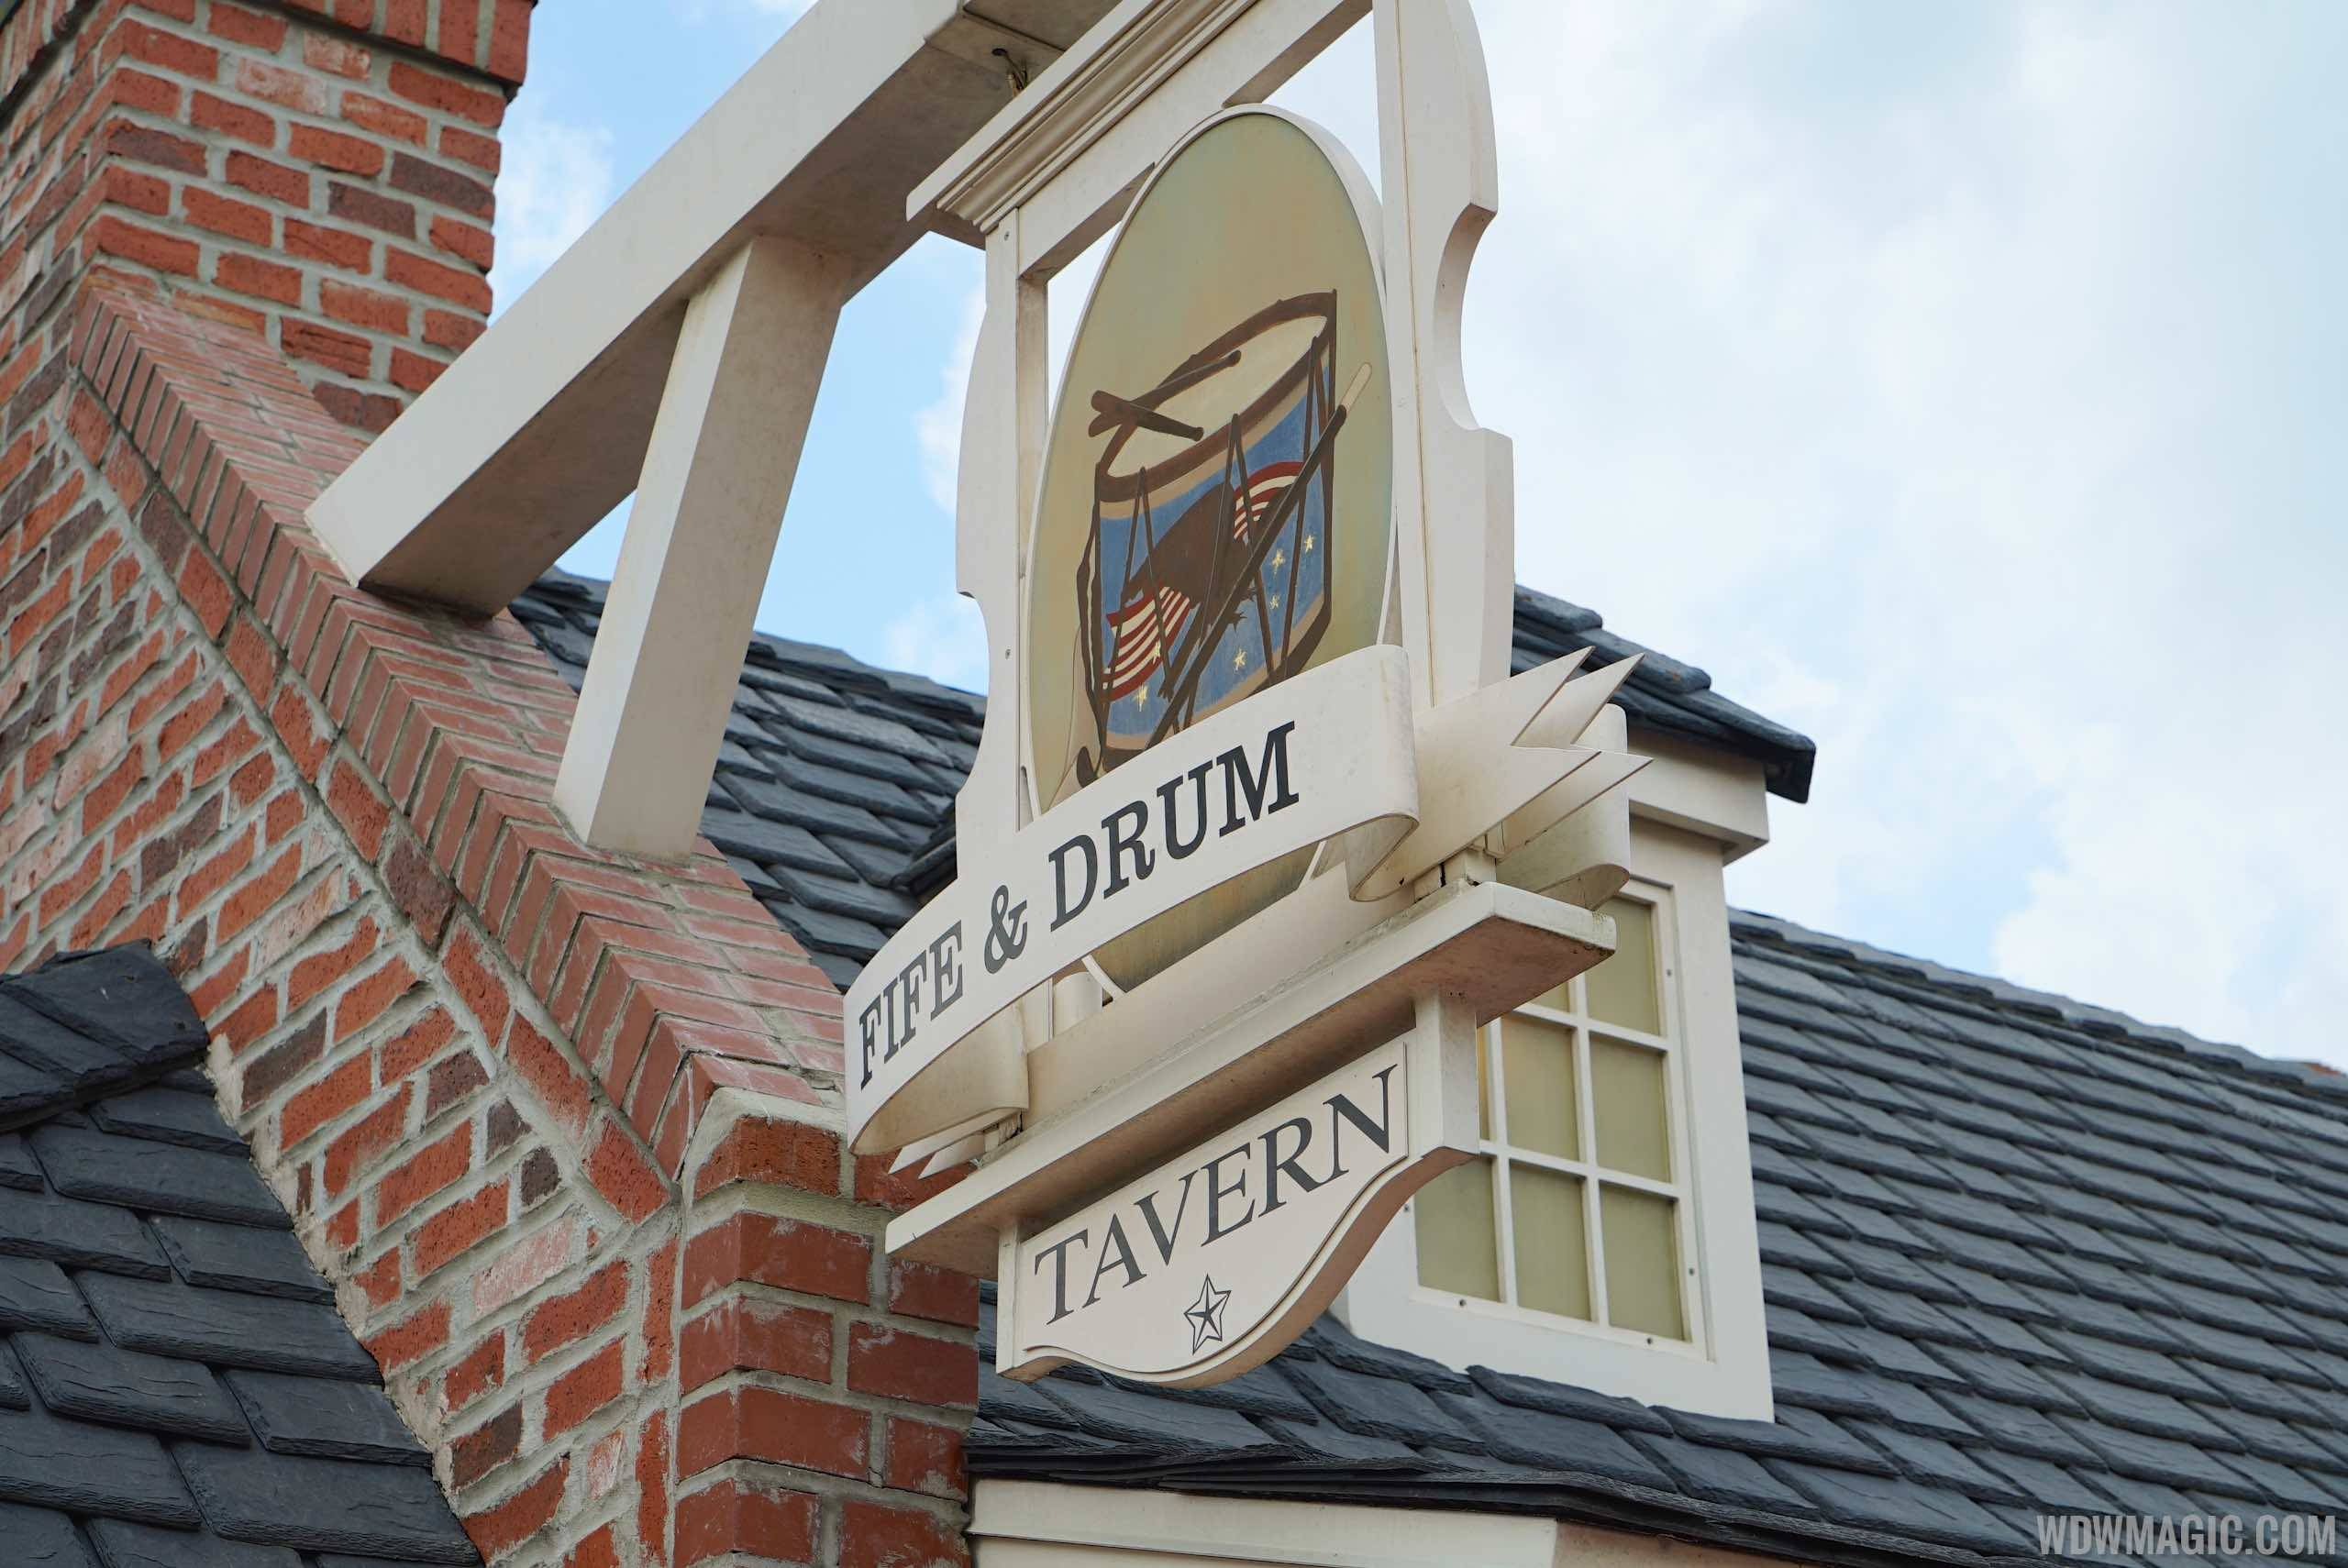 Fife and Drum Tavern overview